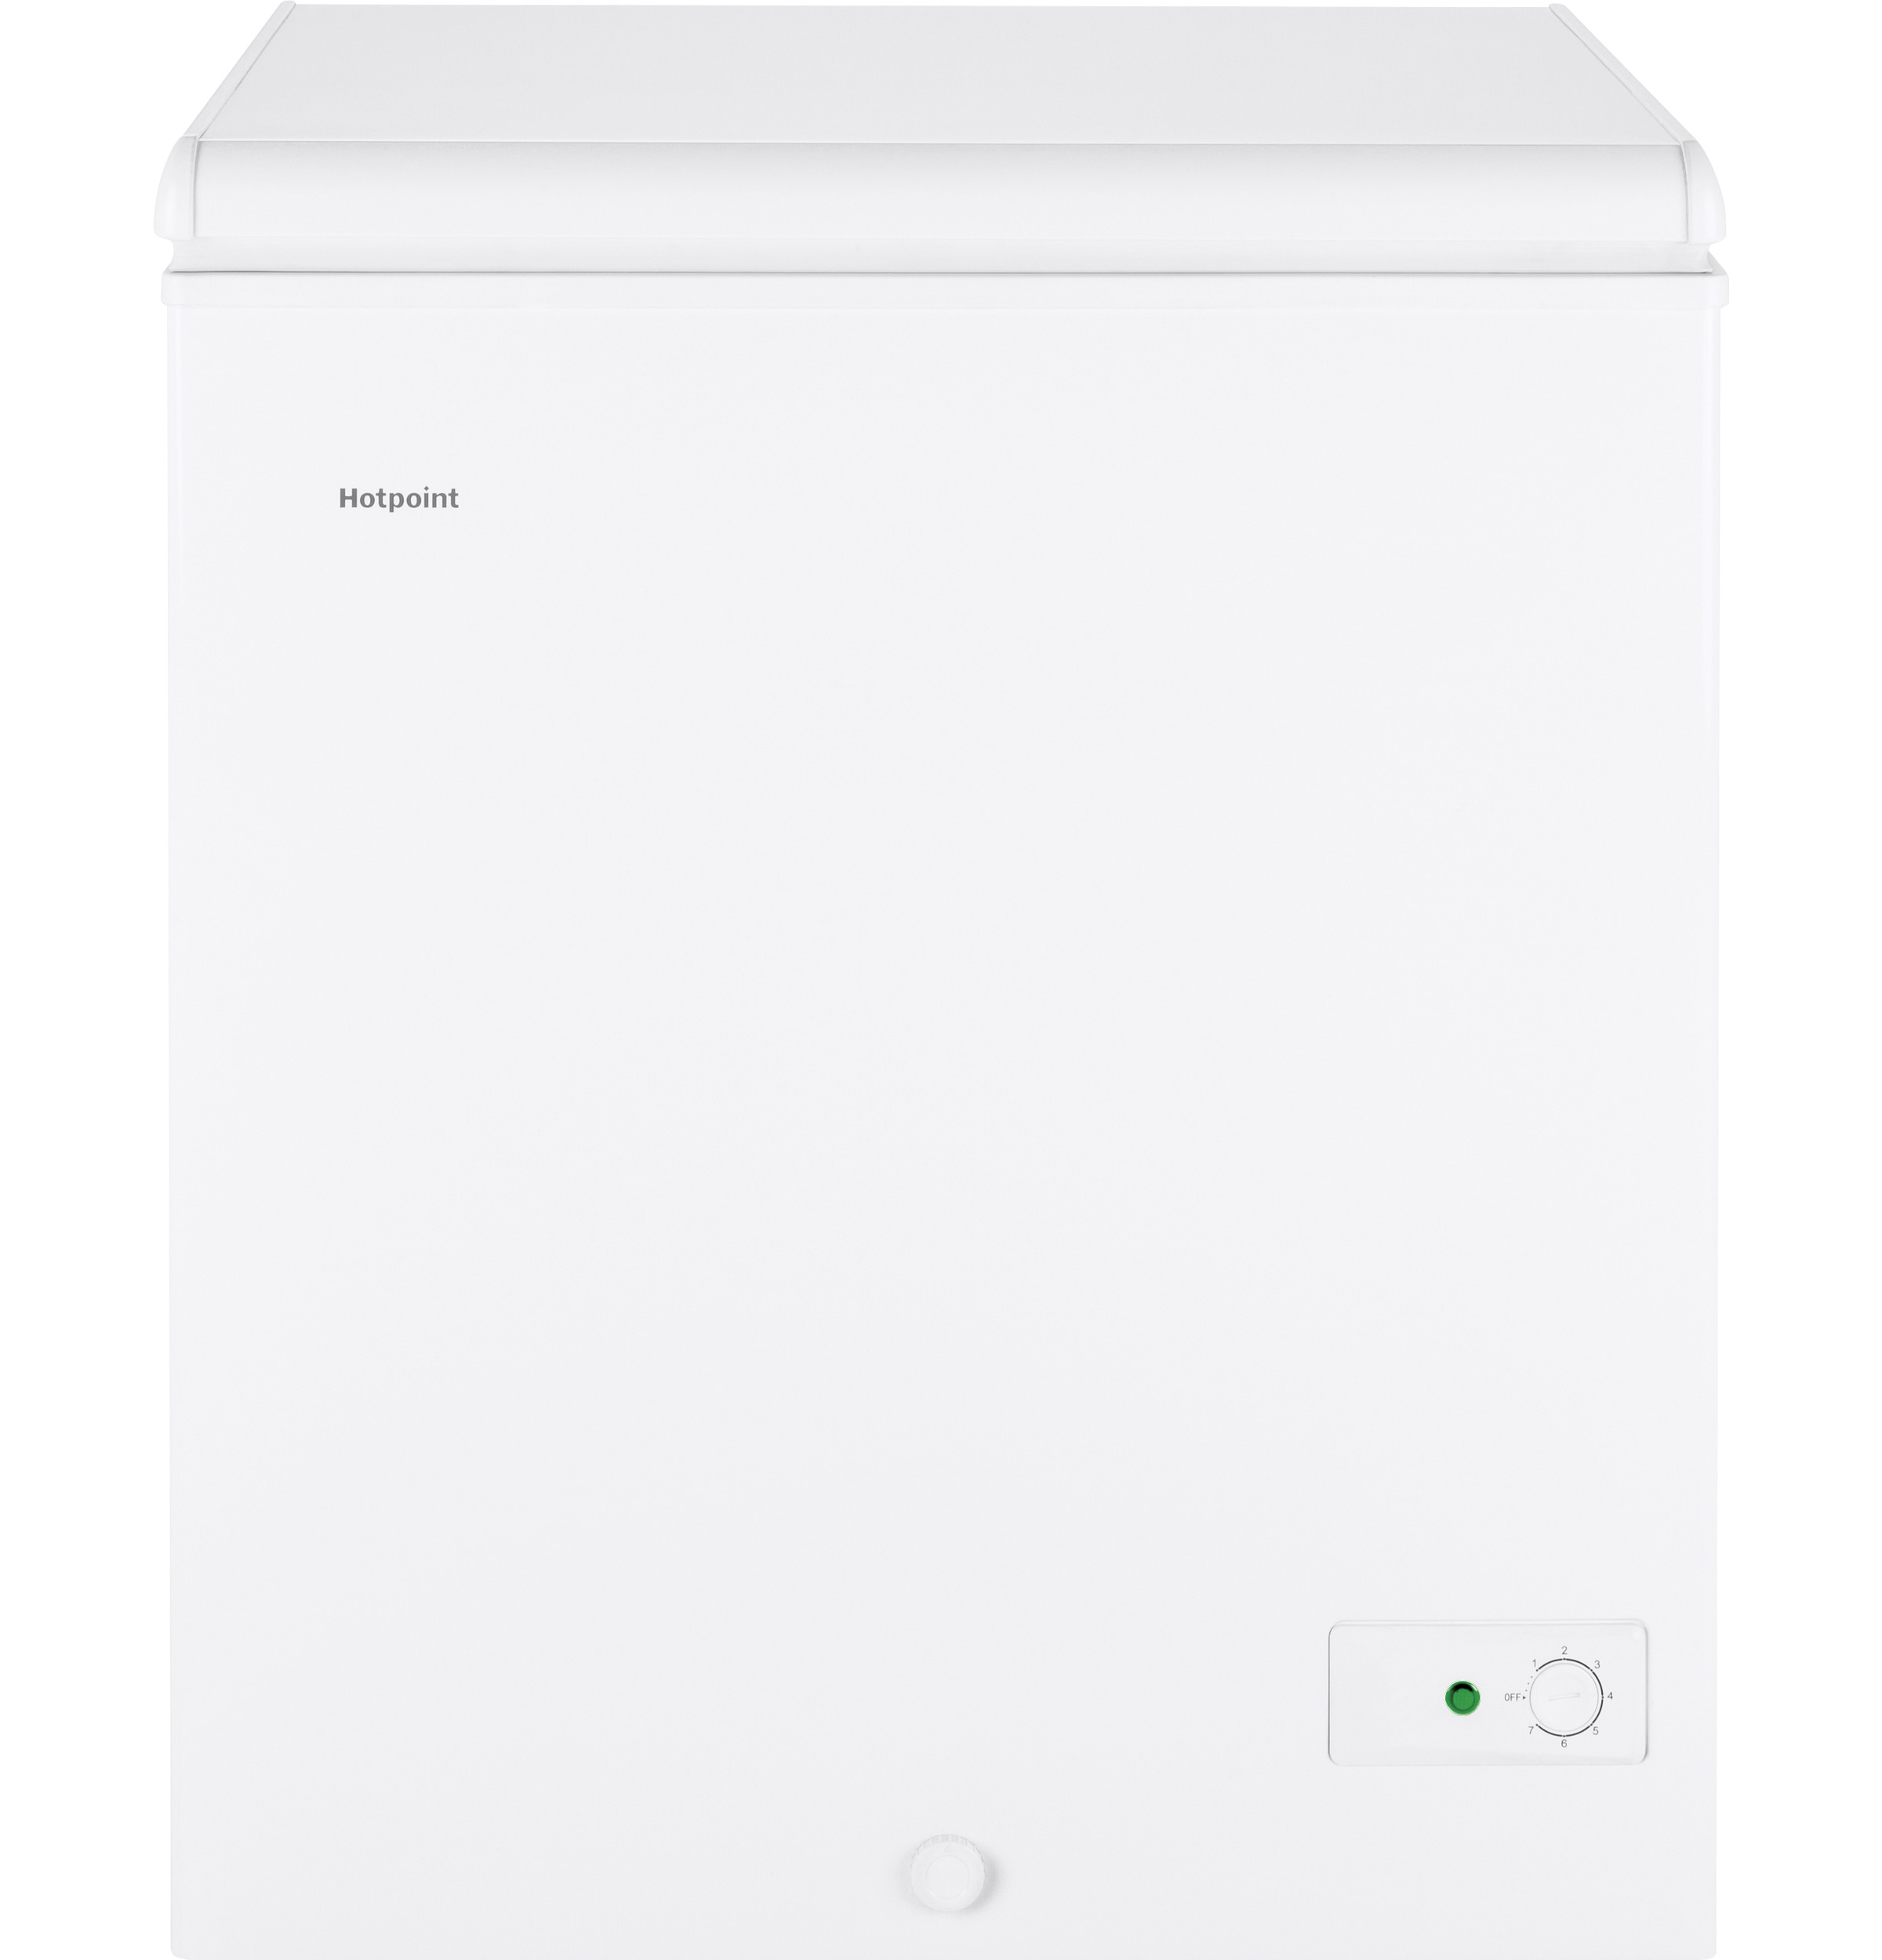 Hotpoint Hotpoint® 5.1 Cu. Ft. Manual Defrost Chest Freezer